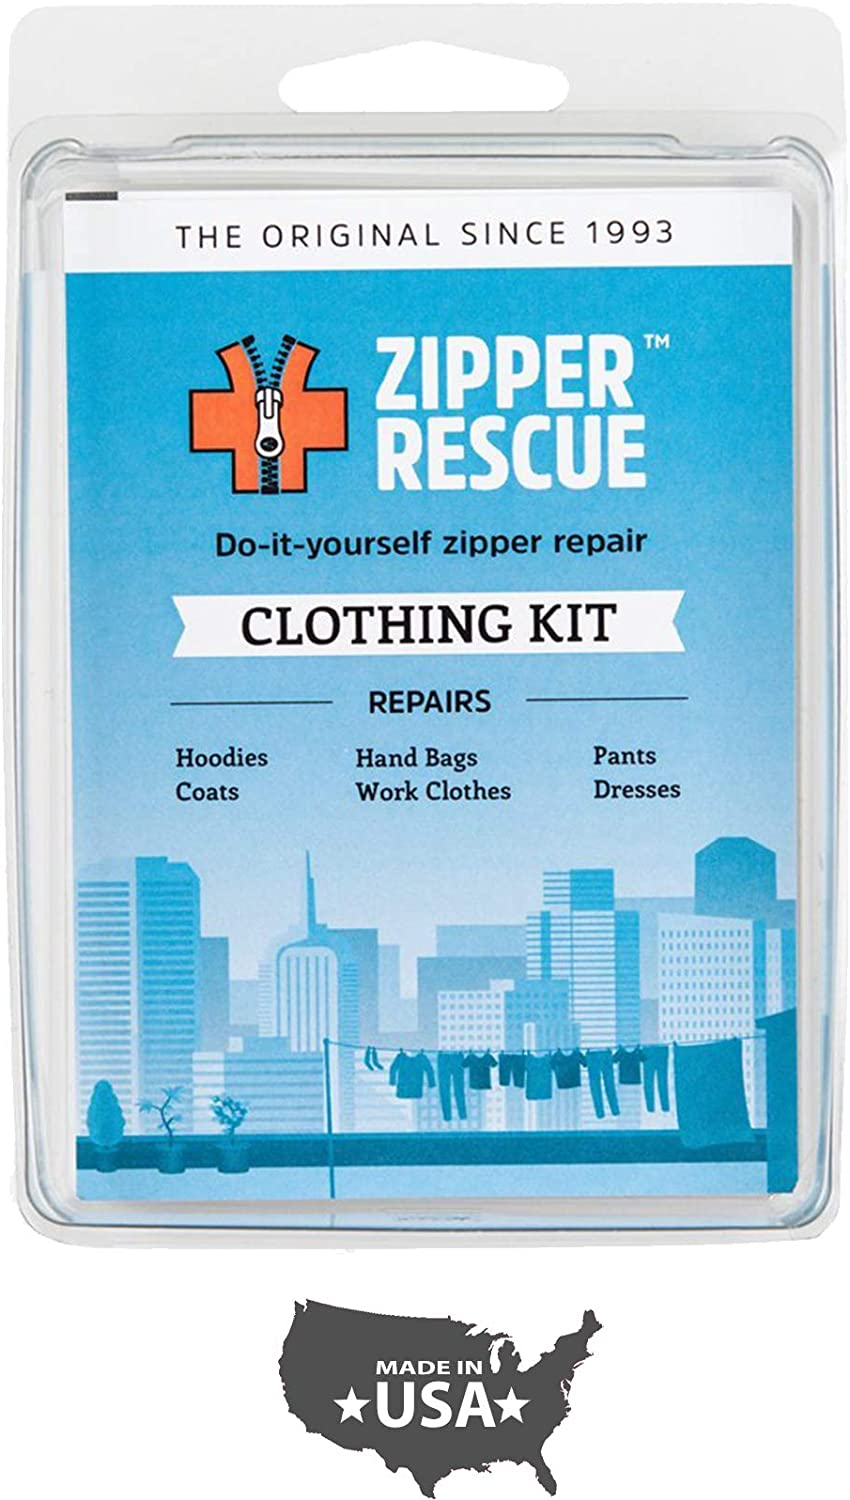 B0001DUQFU Zipper Rescue Zipper Repair Kits – The Original Zipper Repair Kit, Made in America Since 1993 (Clothing) 717tj4Gtr6L